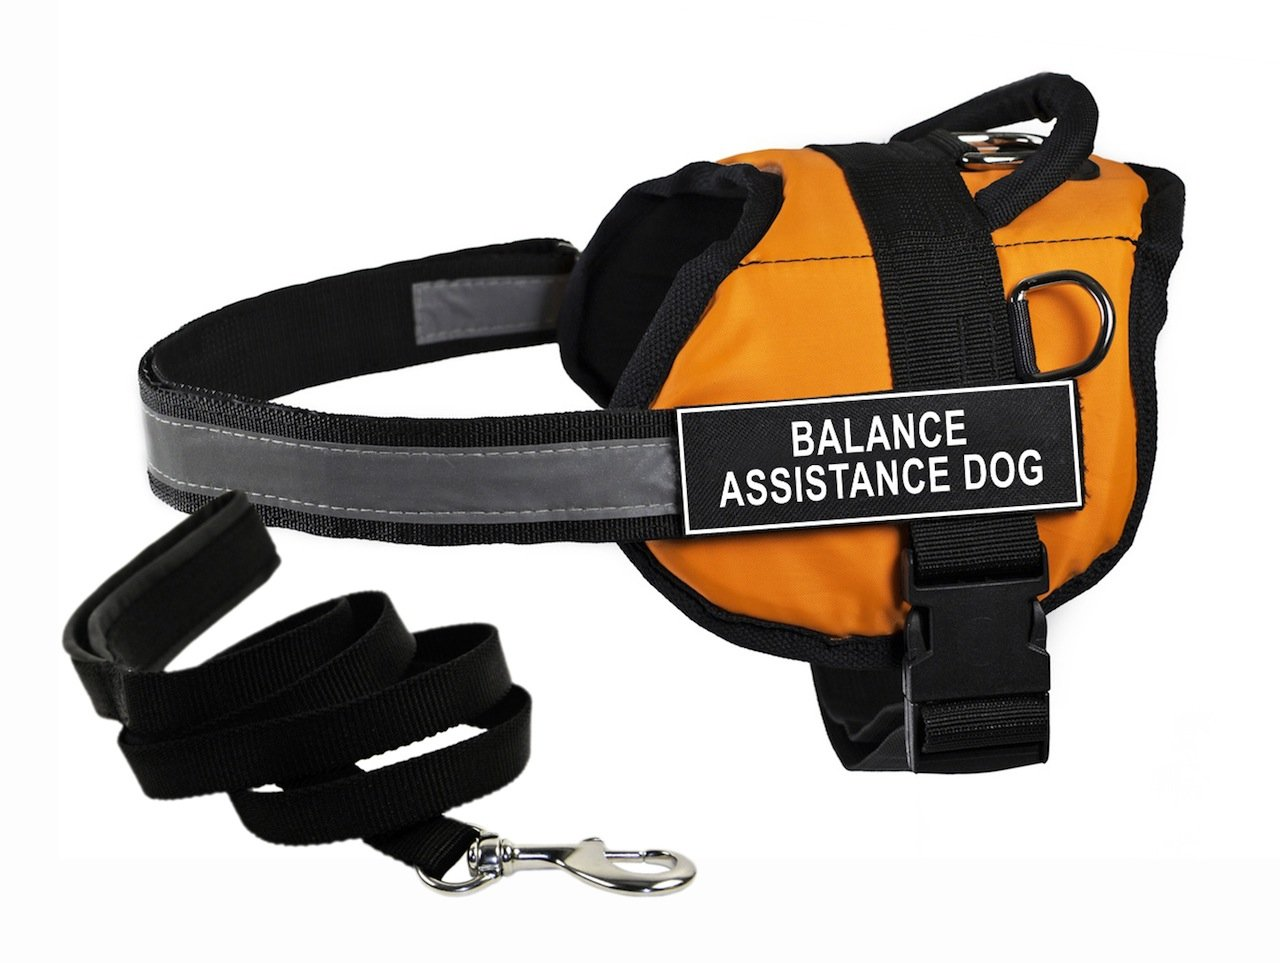 Dean & Tyler's DT Works orange Balance Assistance Dog  Harness with, XX-Small, and Black 6 ft Padded Puppy Leash.